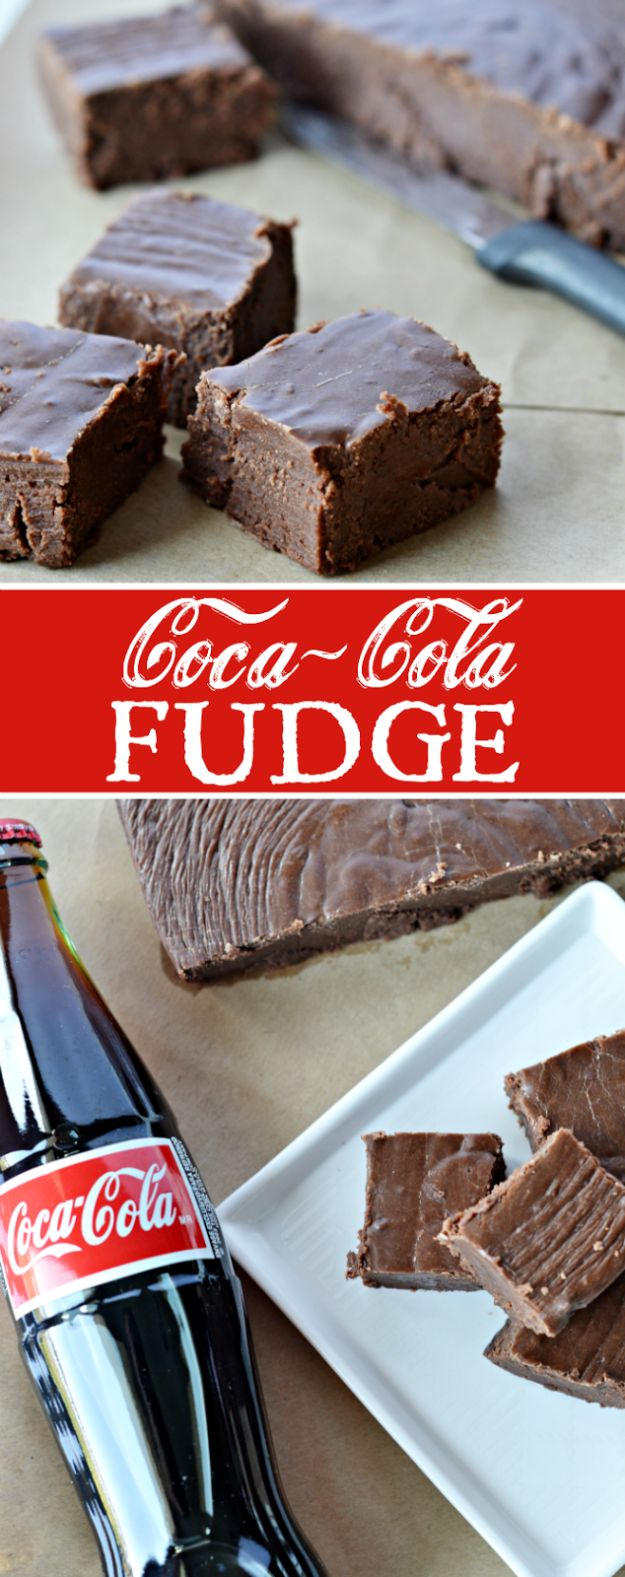 Best Coca Cola Recipes - Coca Cola Fudge - Make Awesome Coke Chicken, Coca Cola Cake, Meatballs, Sodas, Drinks, Sweets, Dinners, Meat, Slow Cooker and Recipe Ideas With Cake Mixes - Fun Food Projects For Families and Parties With Step By Step Tutorials http://diyjoy.com/coca-cola-recipes